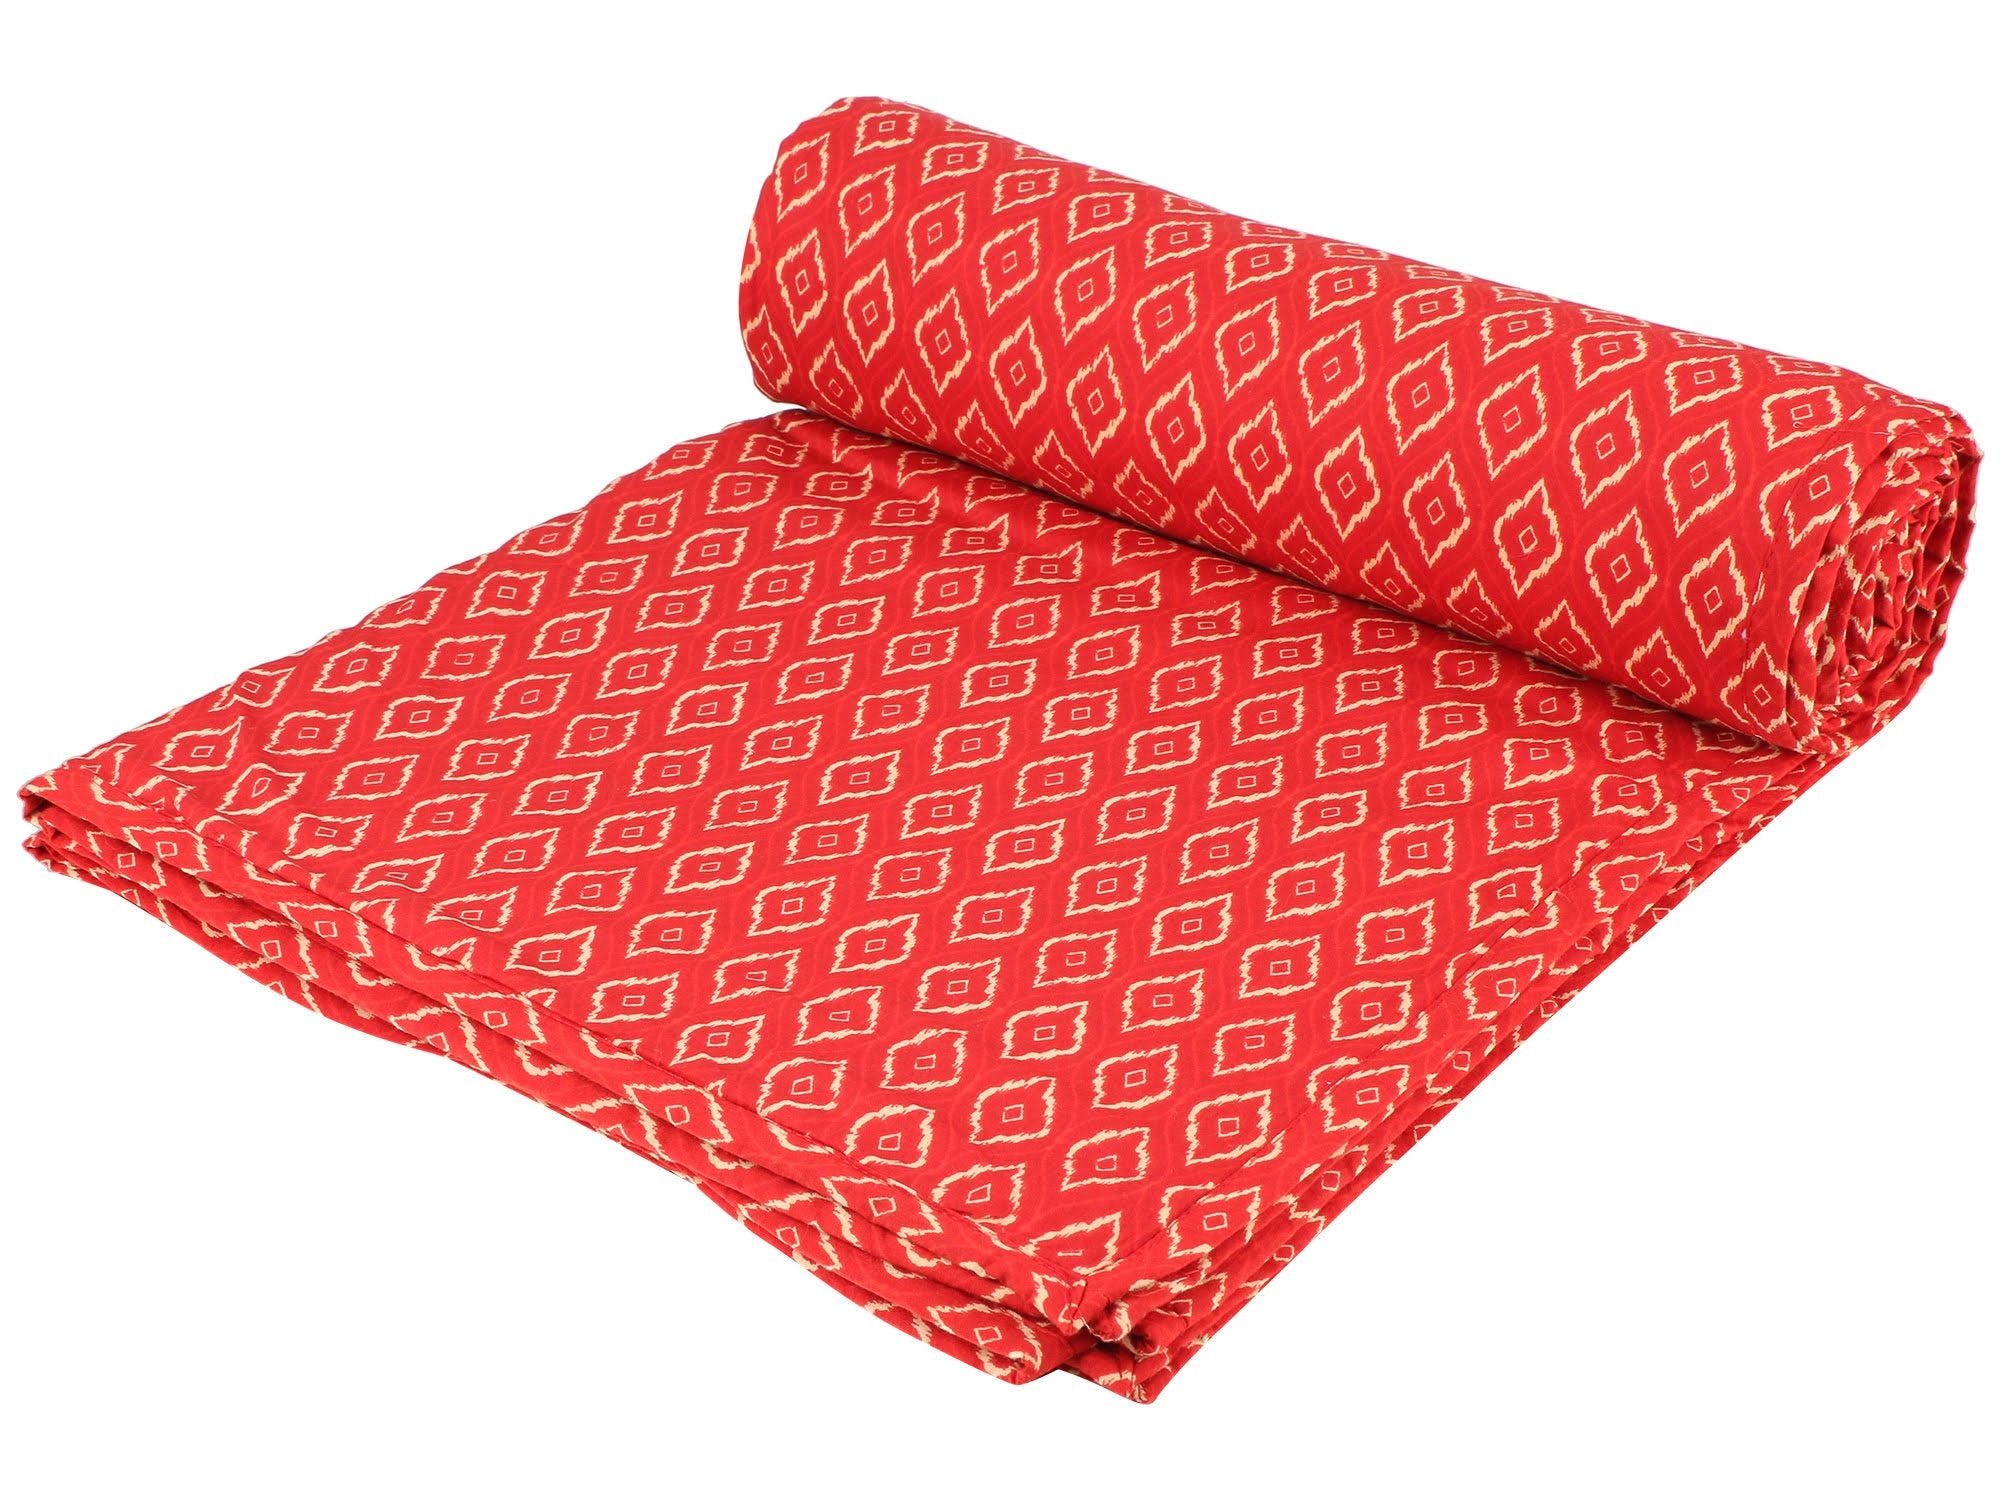 Red Tamarind Reversible Cotton Single Dohar - II (90 x 58 inches)